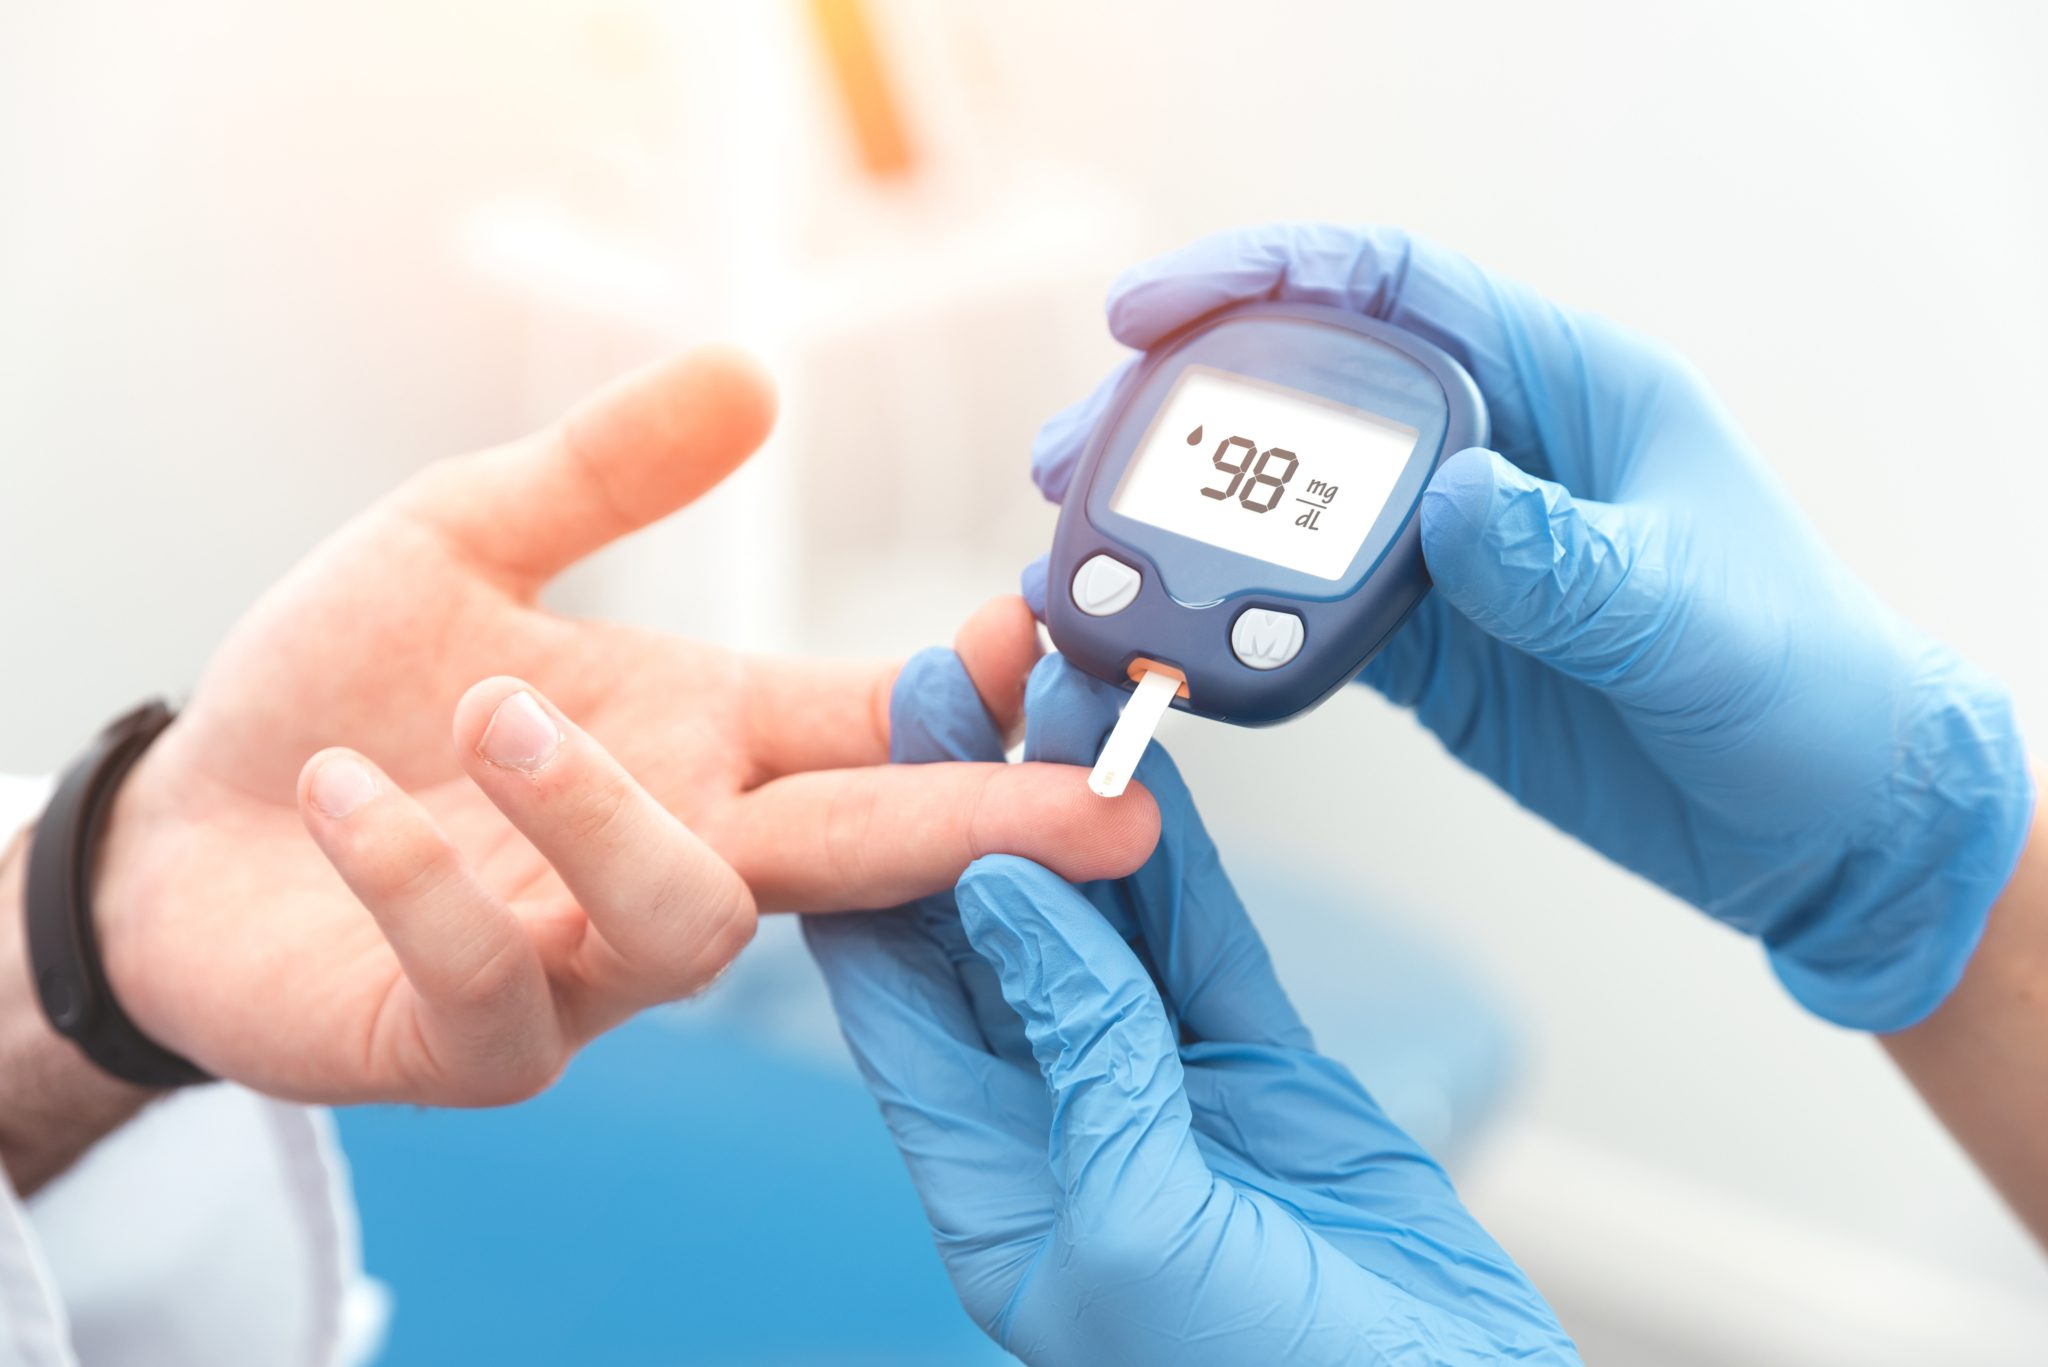 check blood sugar with glucometer